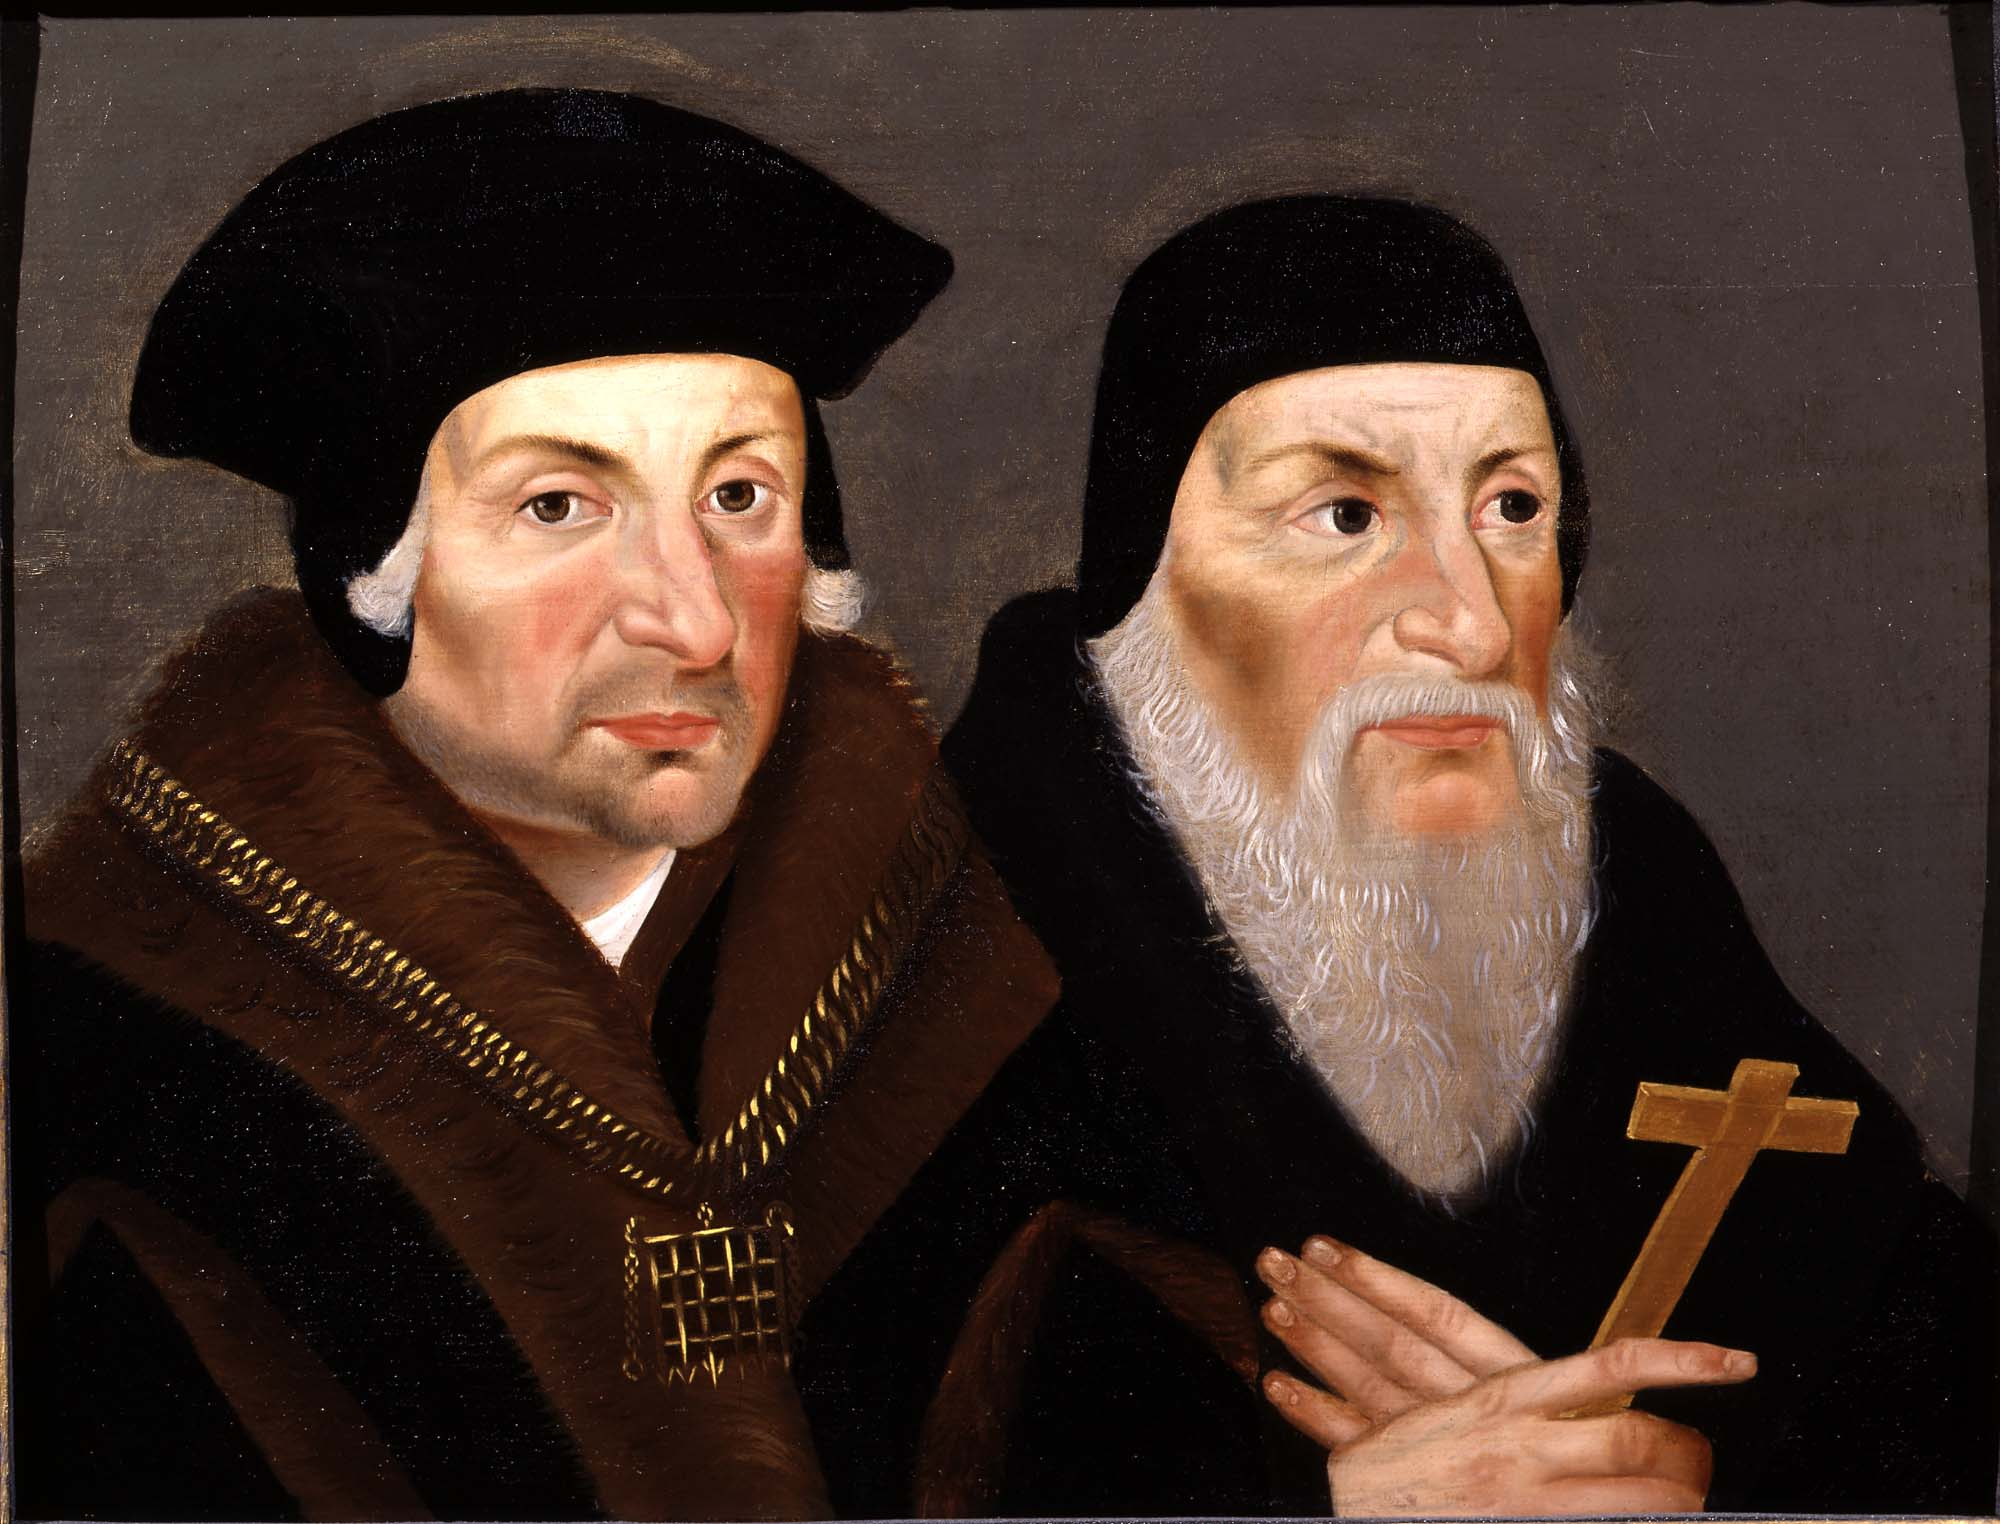 a double portrait of Thomas More in his fiurc oat and black hat with Archbishop Fisher in his skull cap and long grey beard holding a crucifix